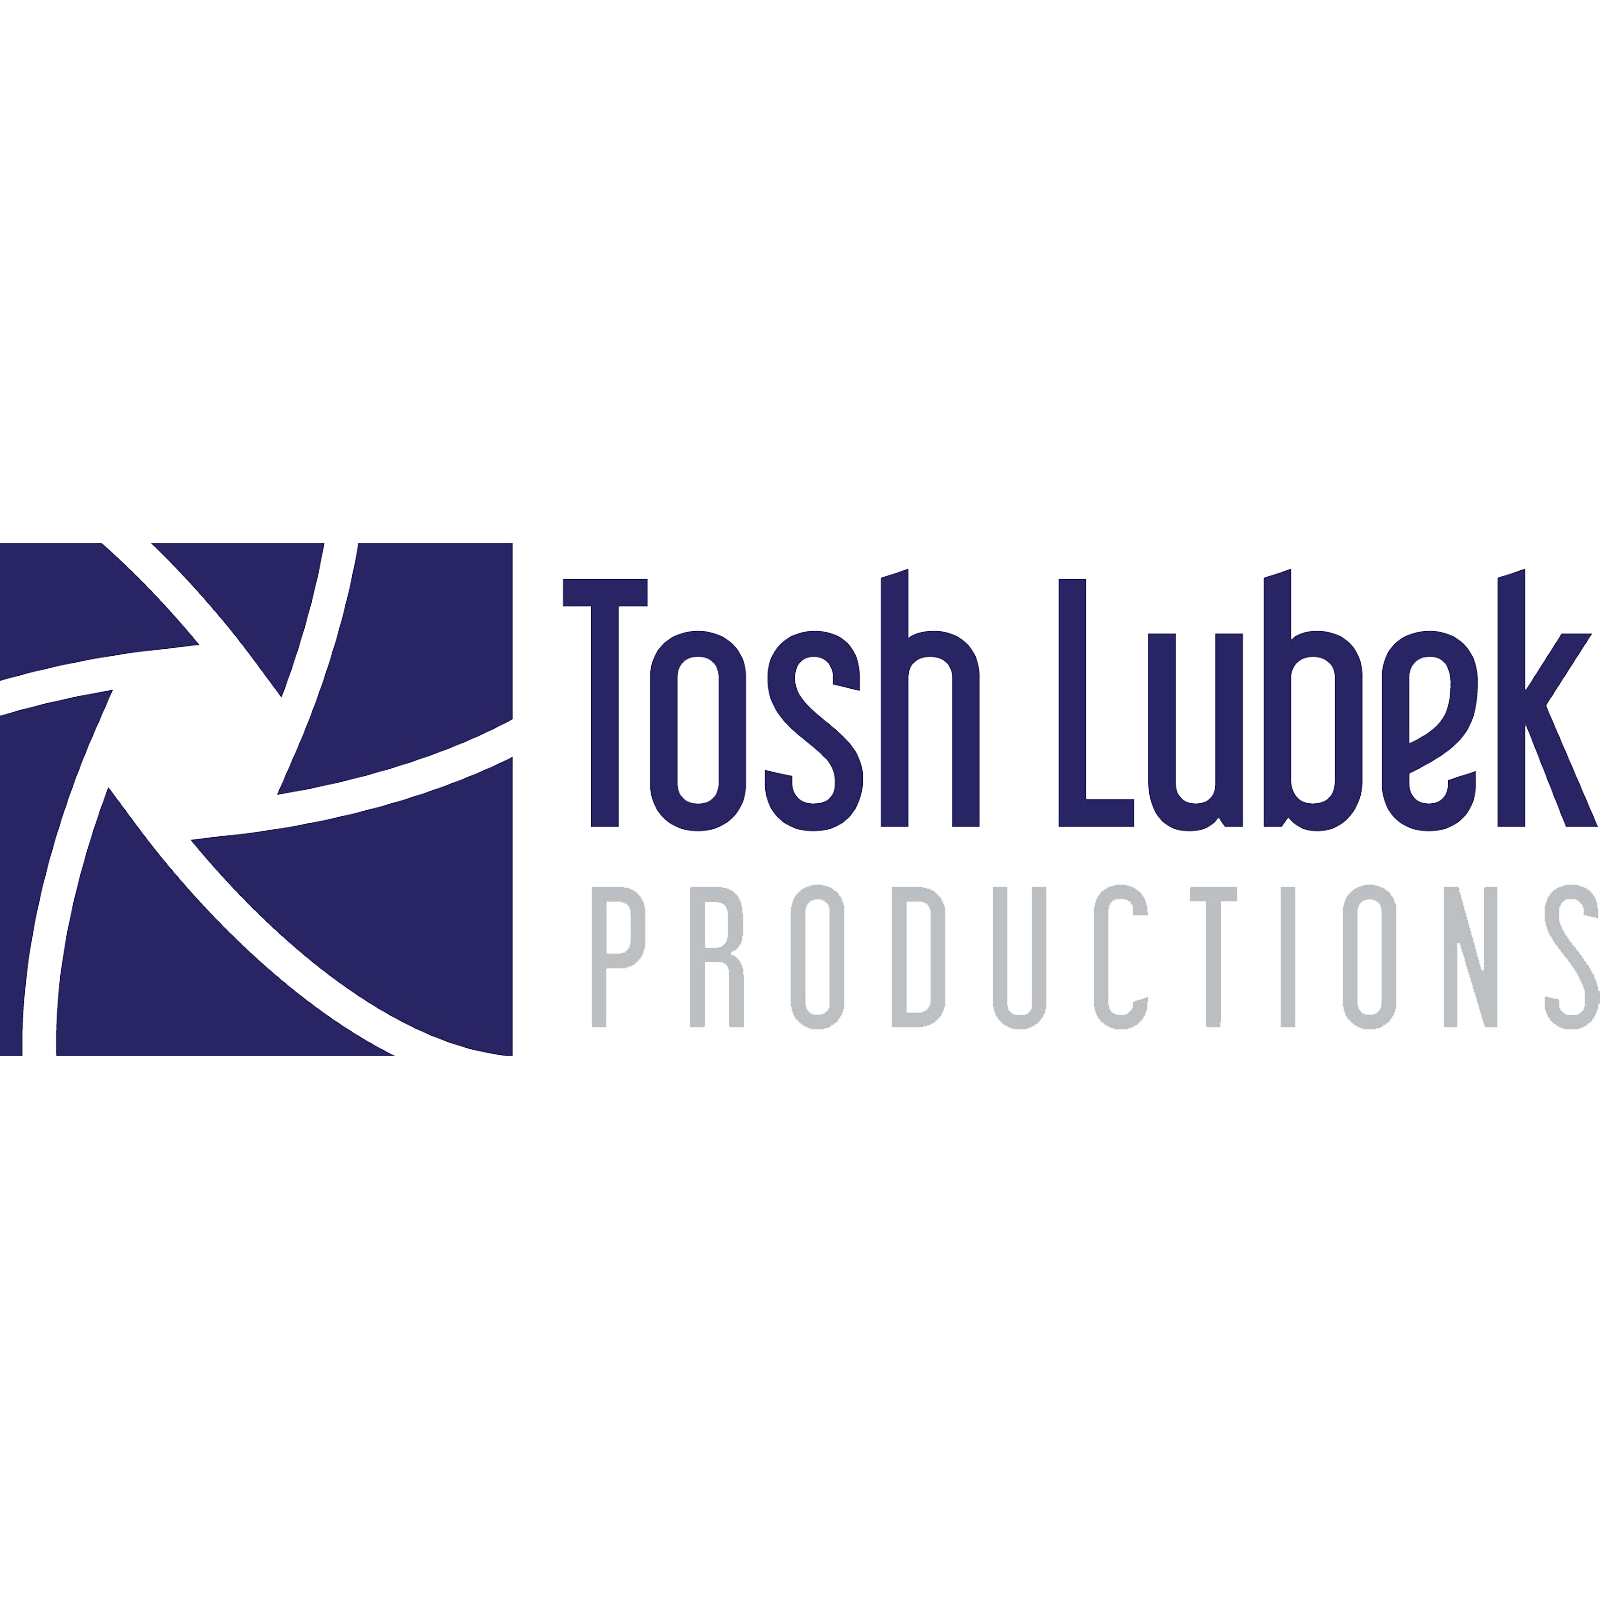 Tosh Lubek Productions sponsor Hashtag Events